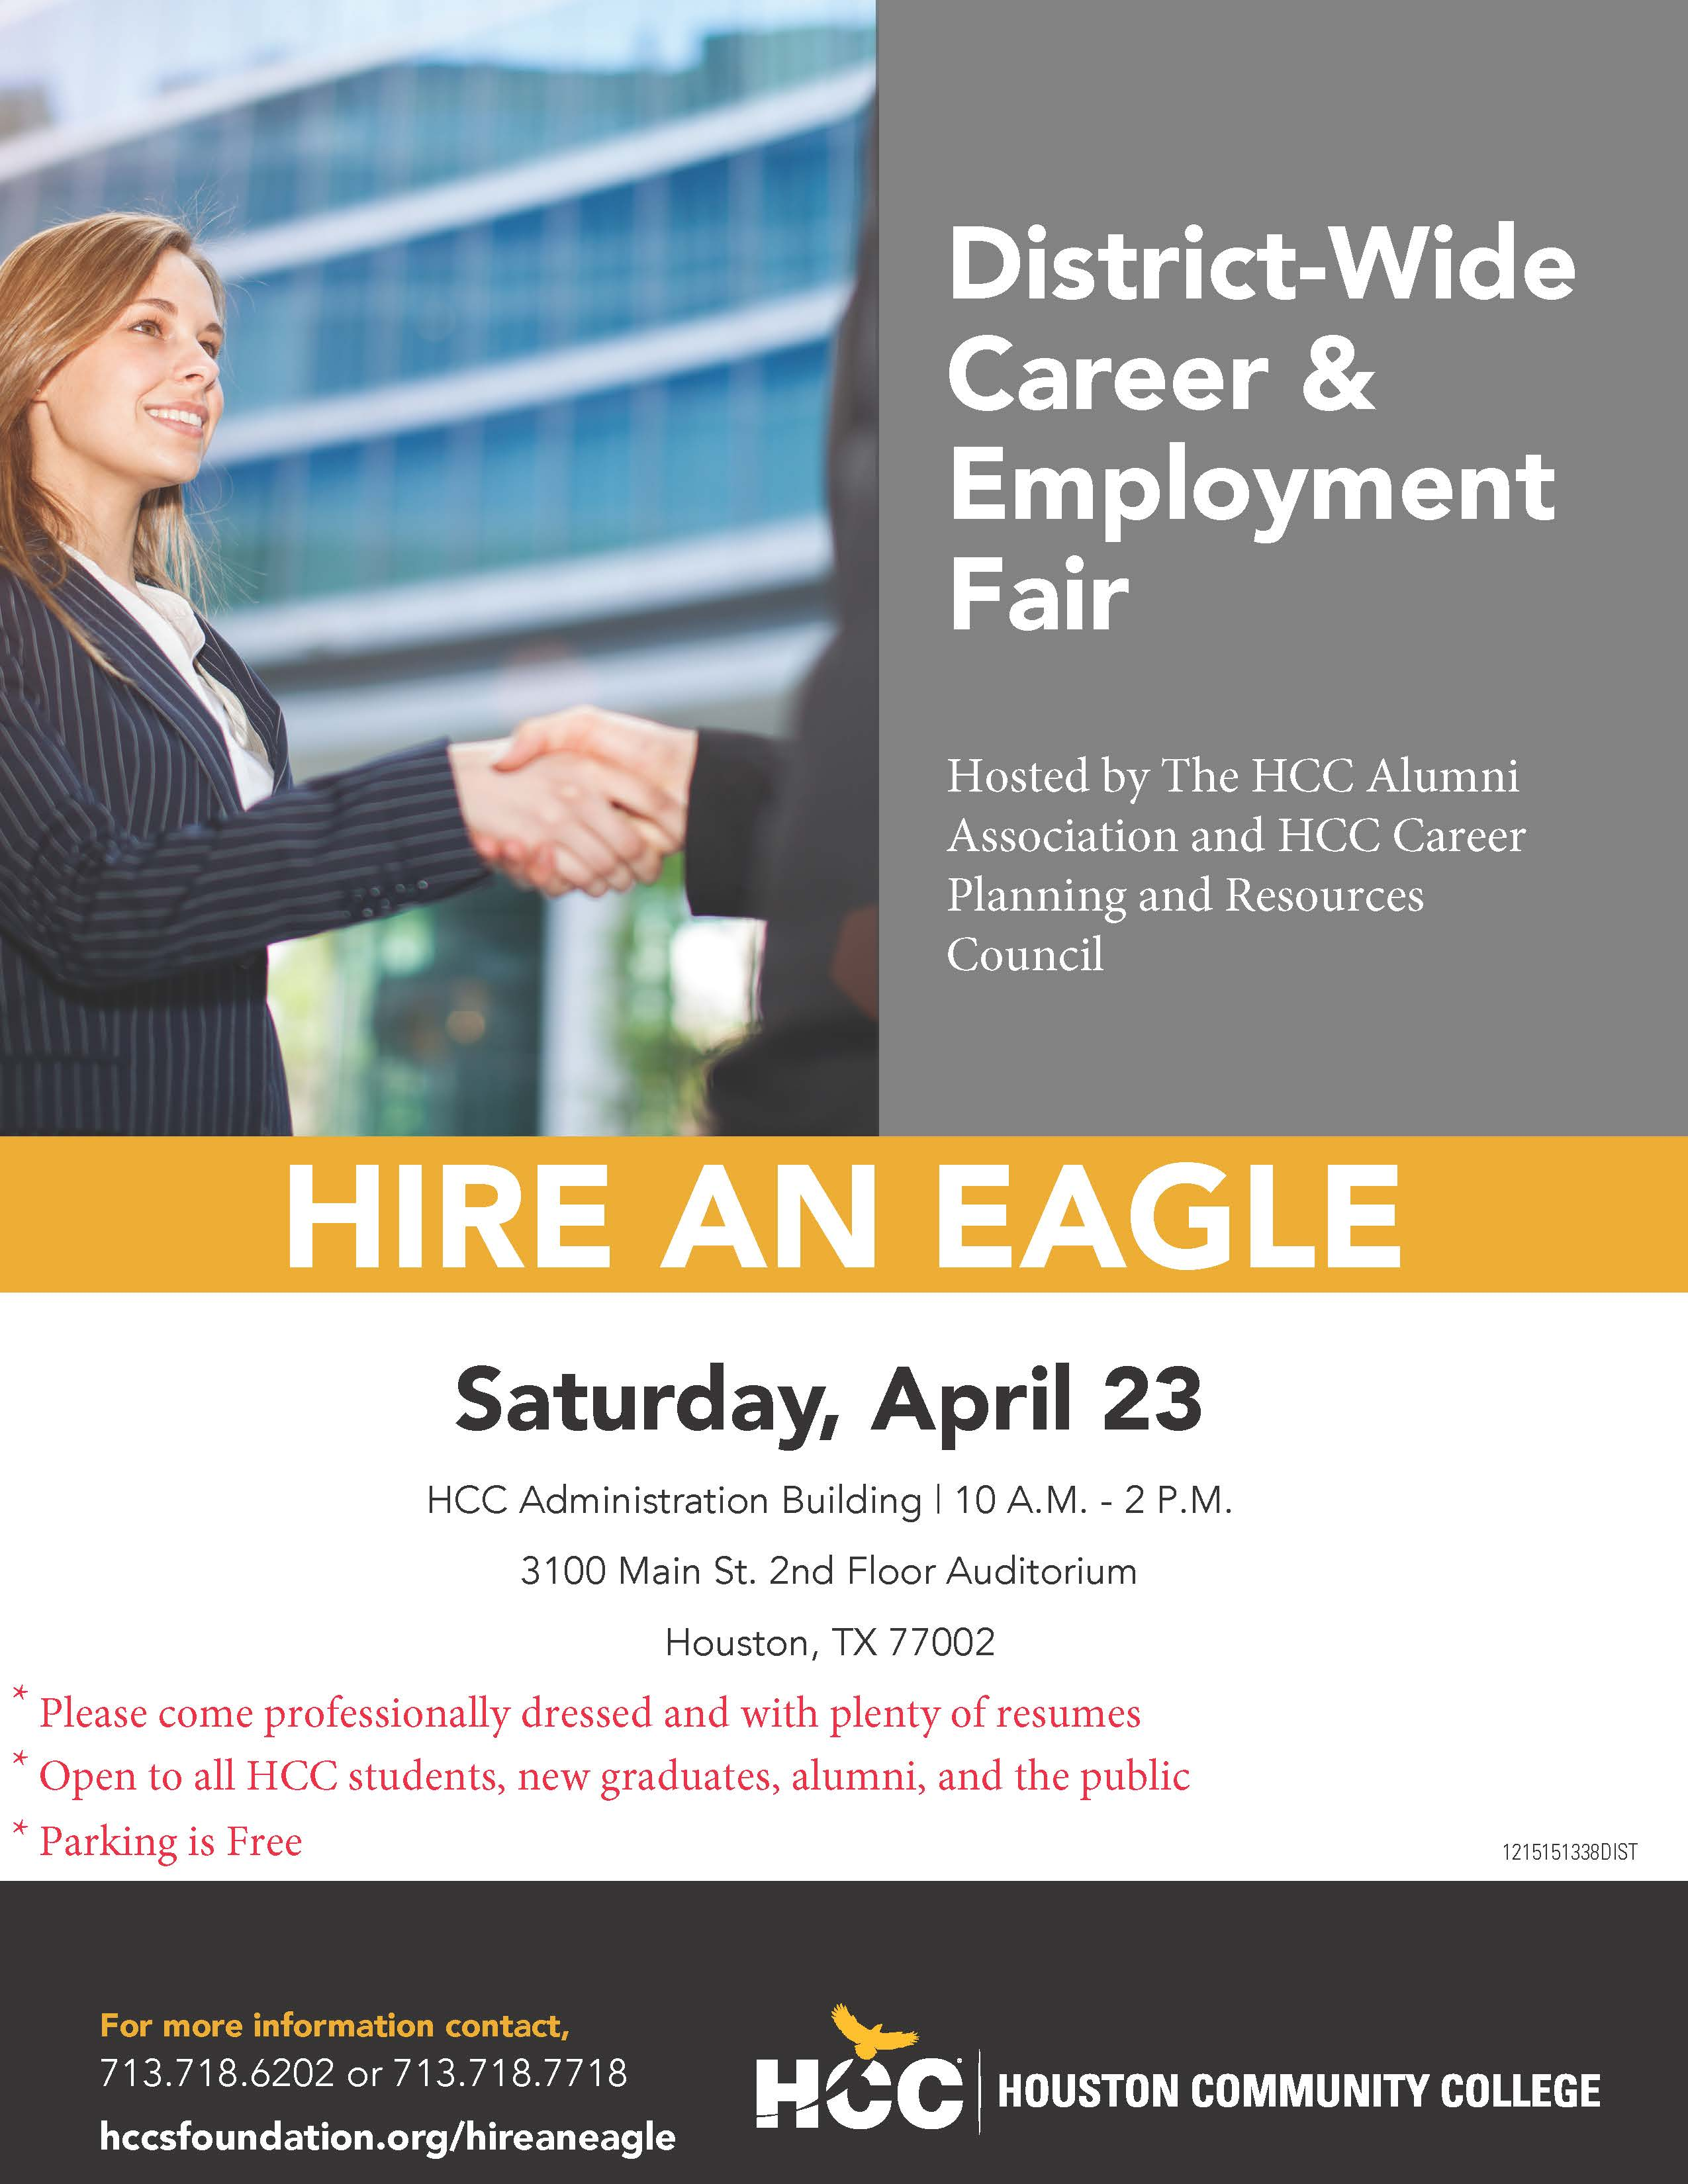 Hire An Eagle Houston Community College Foundation